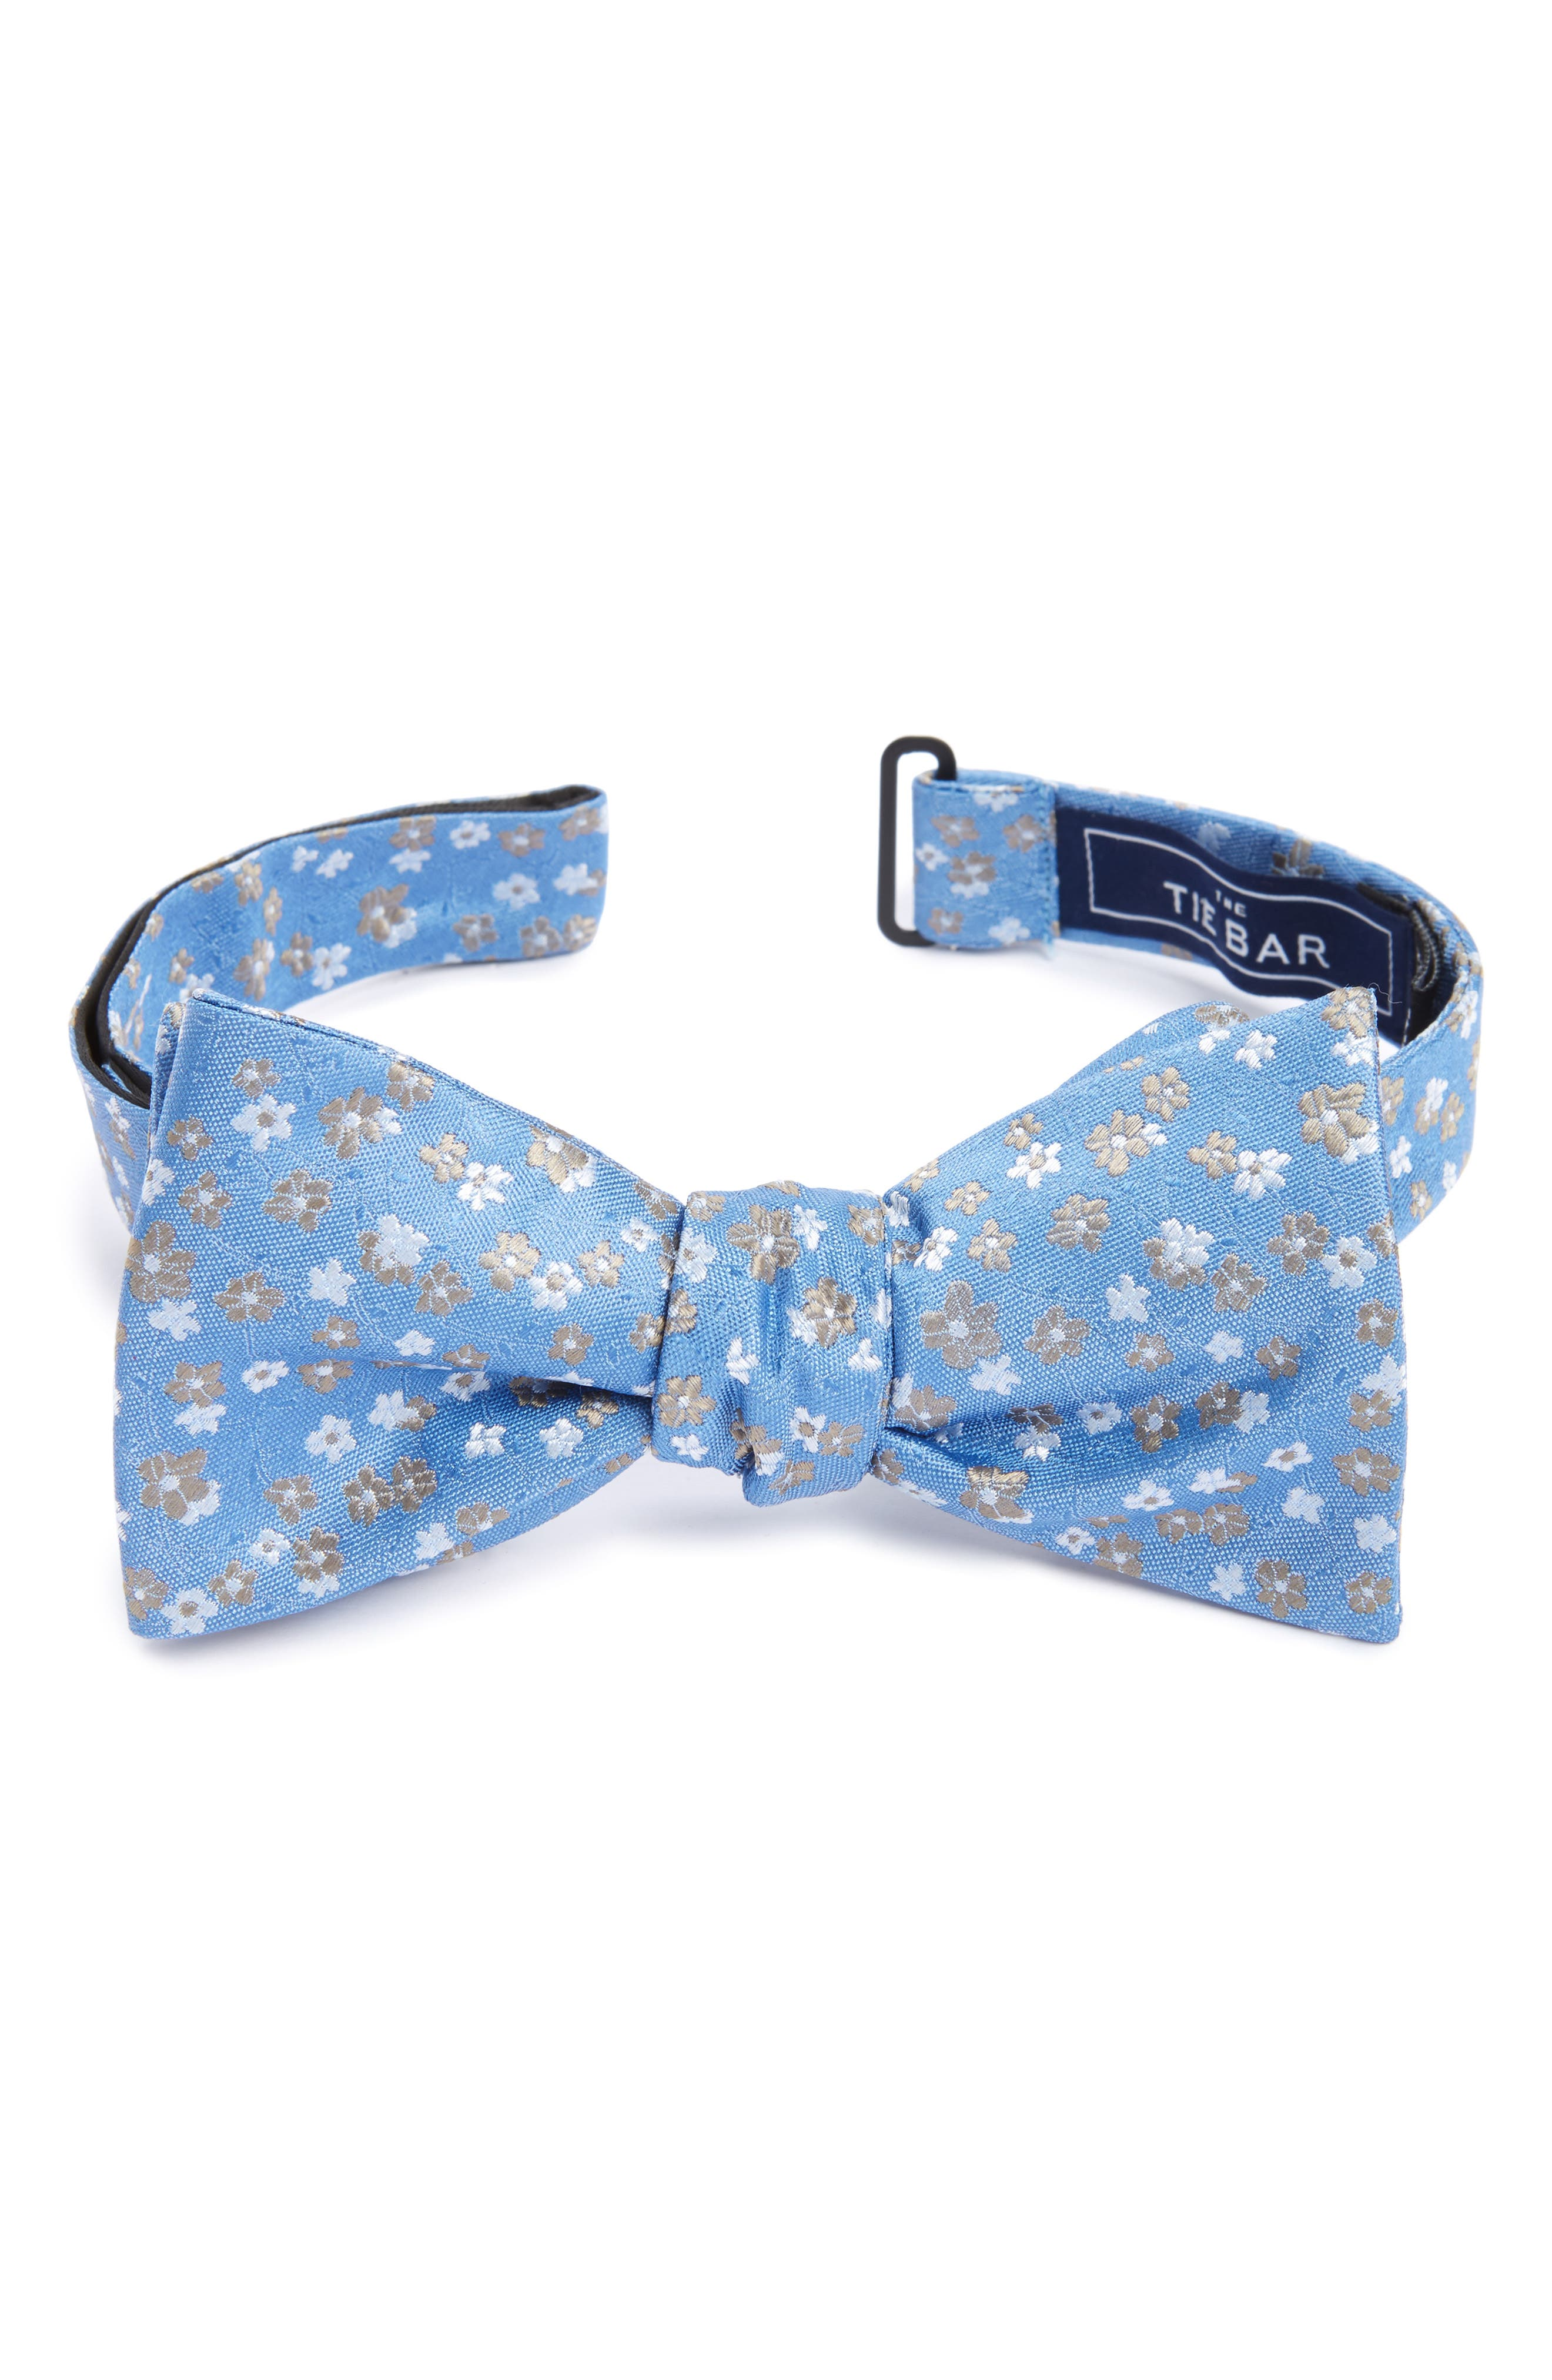 The Tie Bar Freefall Floral Silk Bow Tie